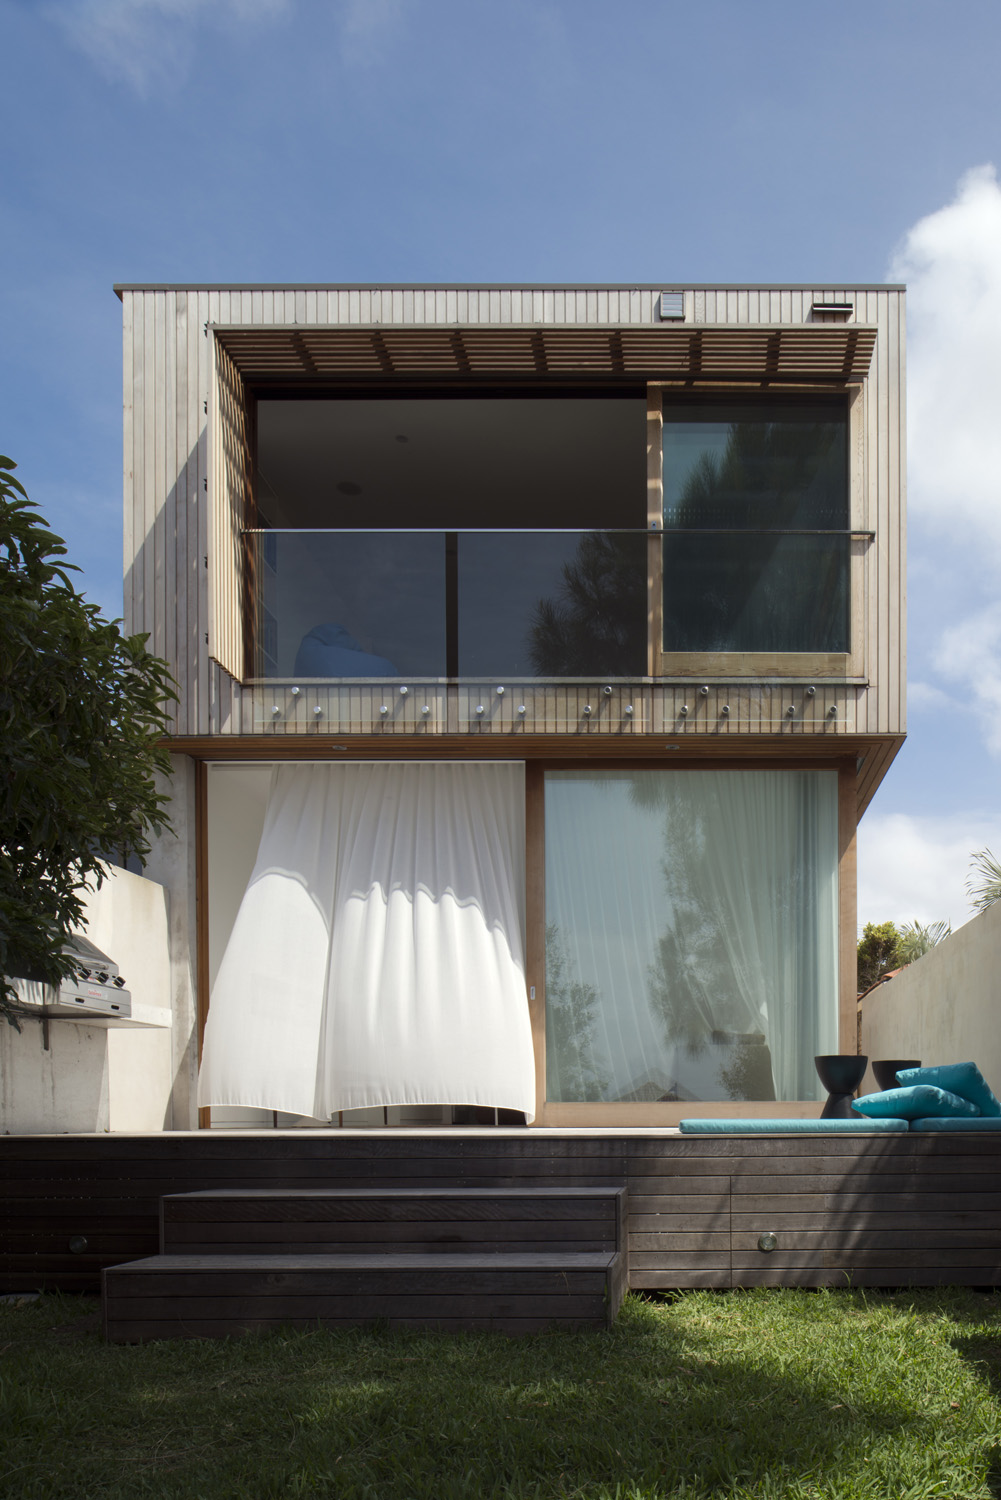 Grand Designs Australia: Rebirth & renewal